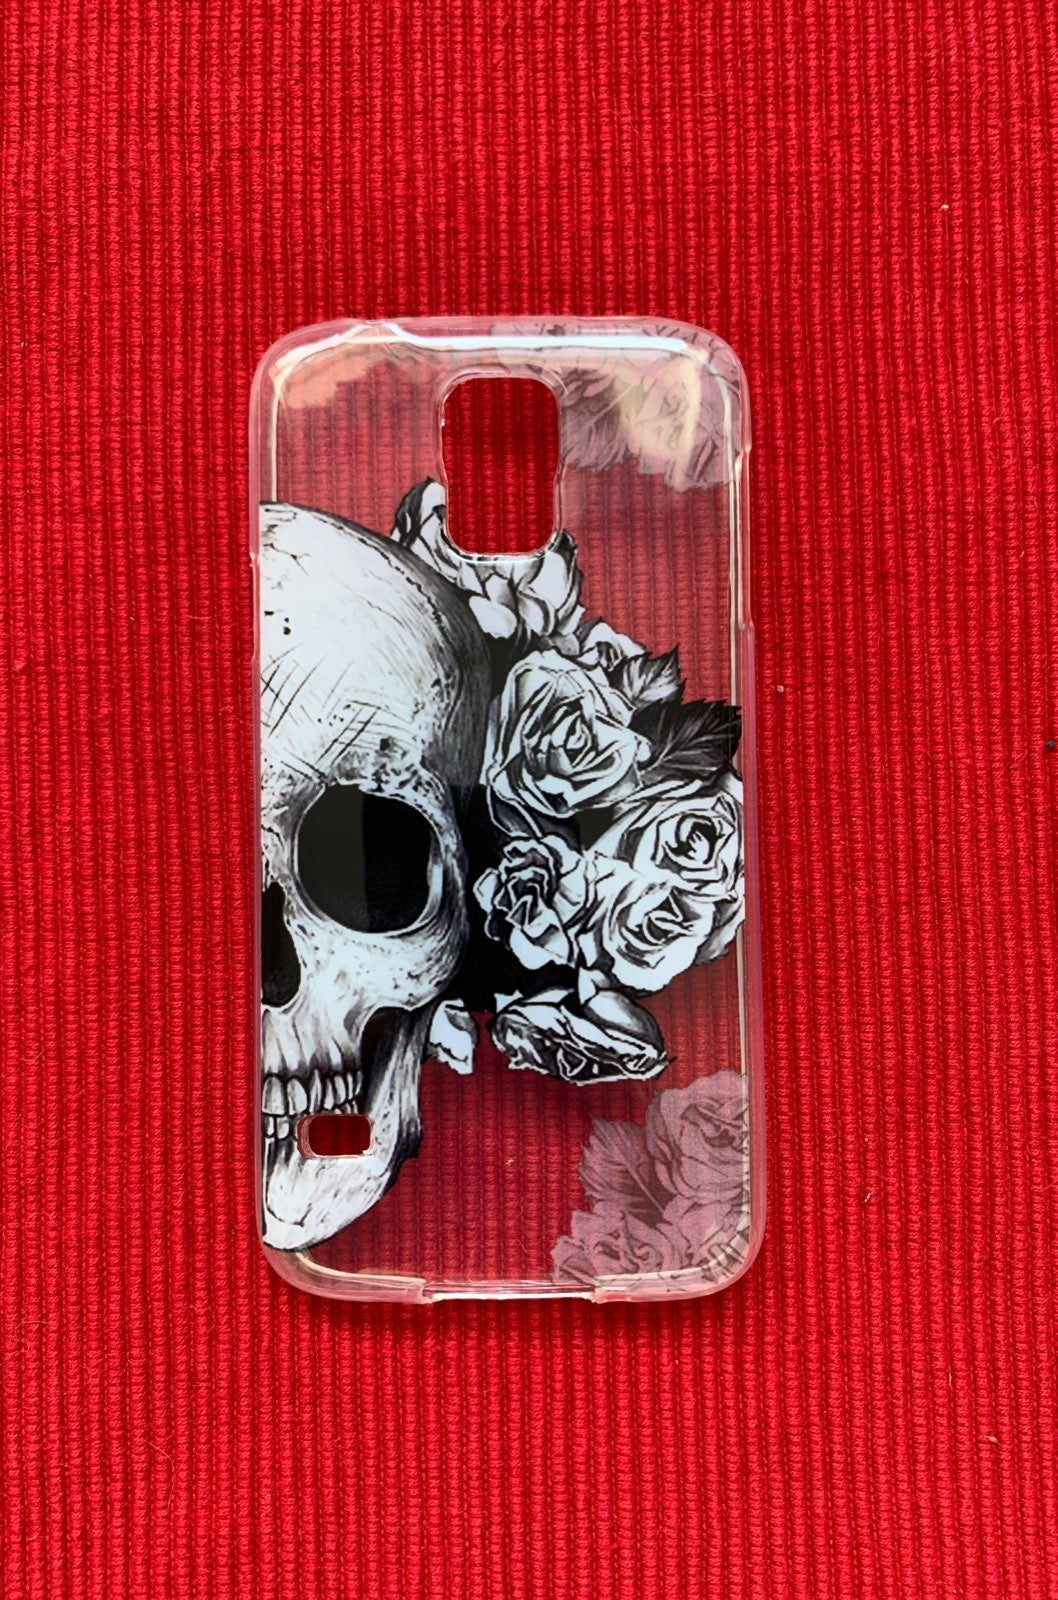 Skull case for Samsung galaxy s5